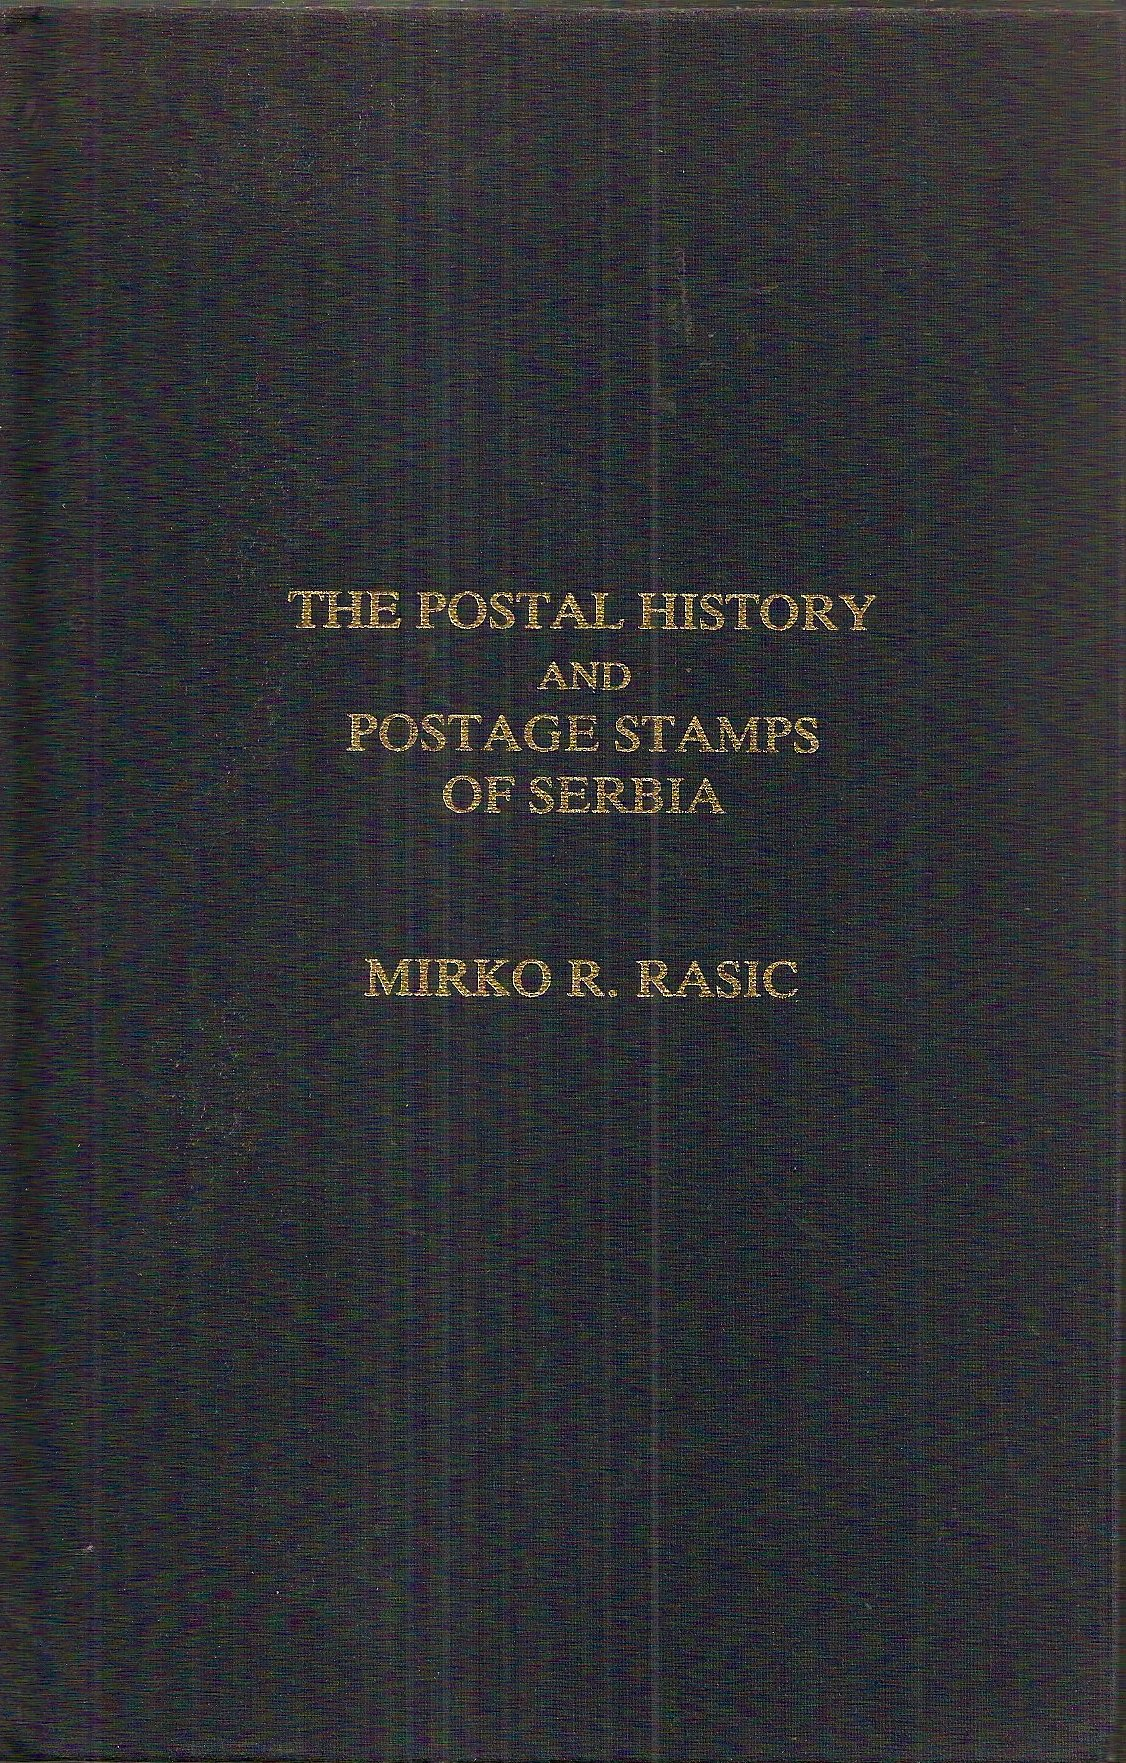 THE POSTAL HISTORY AND POSTAGE STAMPS OF SERBIA, Mirko Rasic, 1979 (hardback)